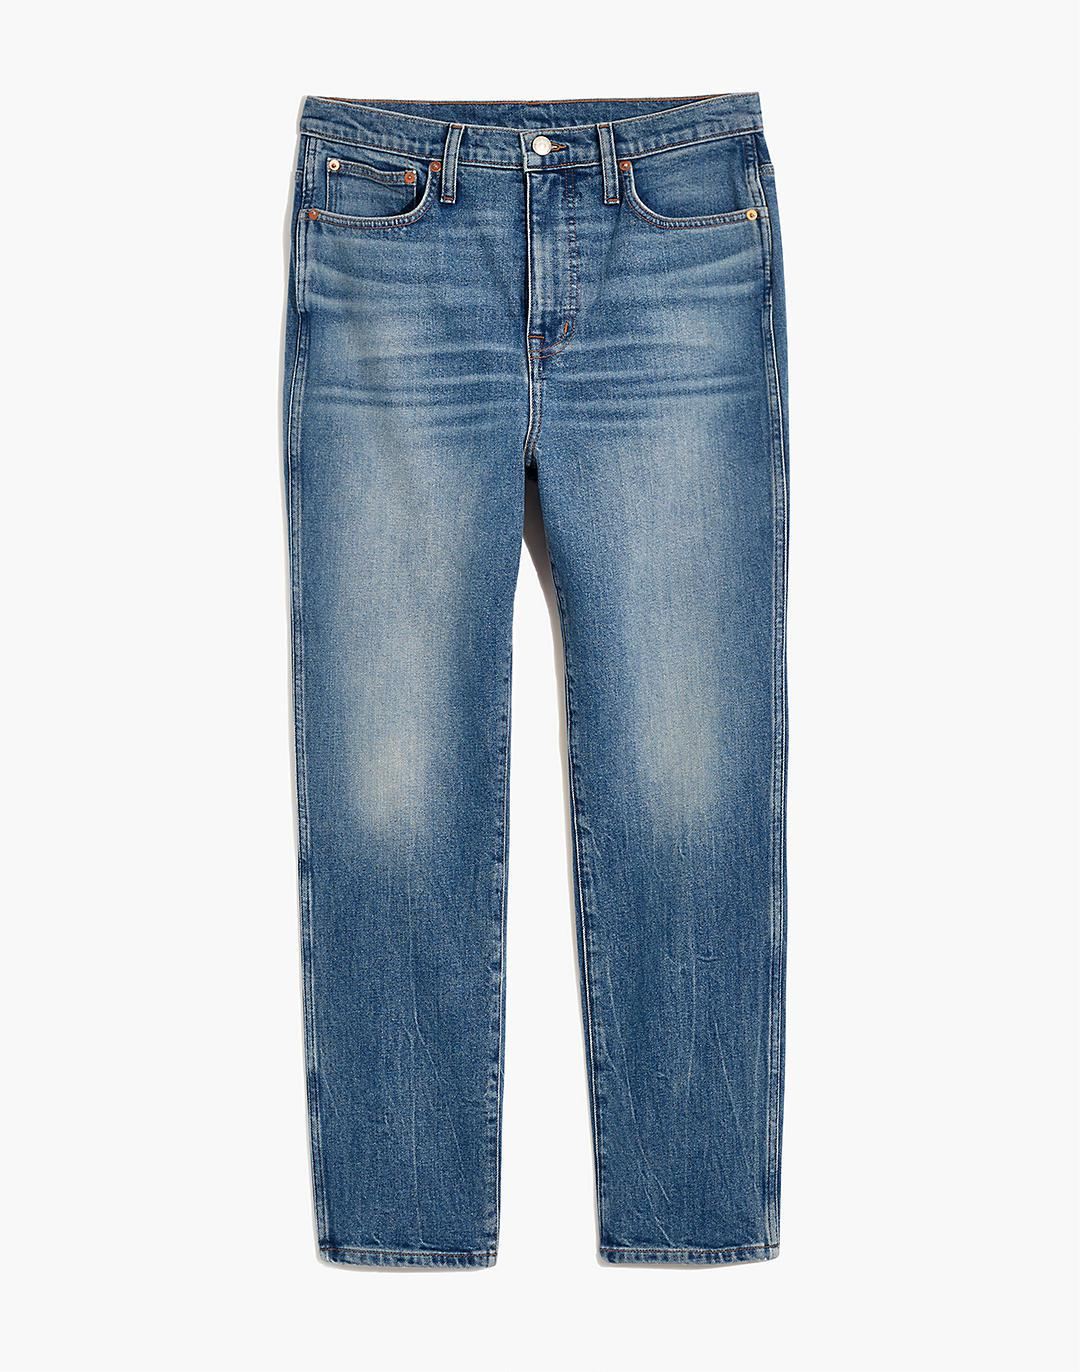 Rivet & Thread High-Rise Stovepipe Jeans in Keyes Wash 4